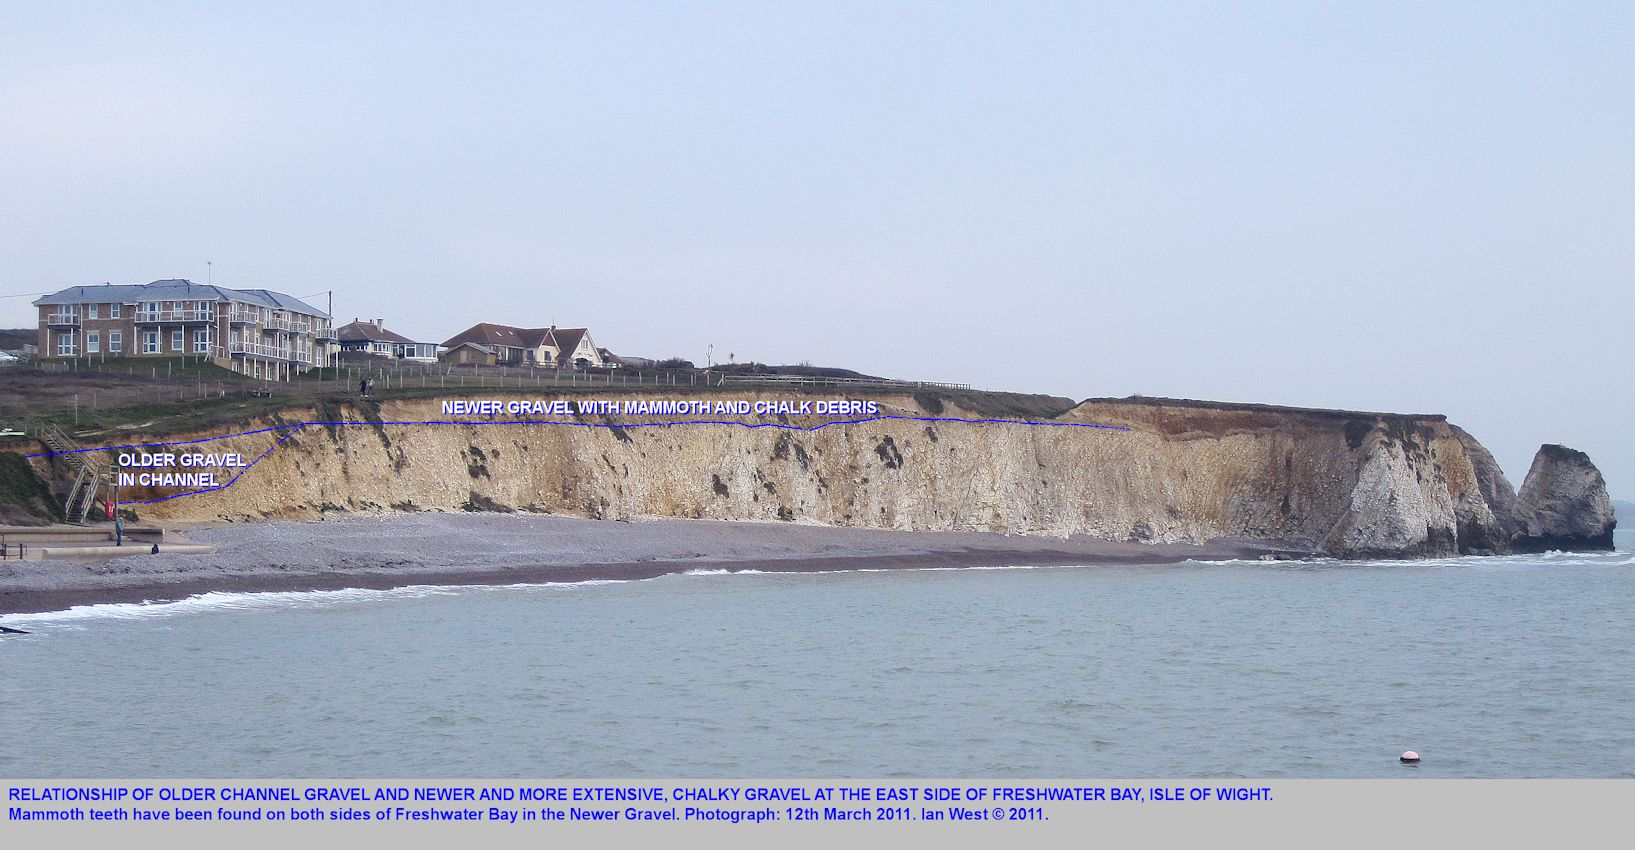 A labelled view, showing the Quaternary deposits on the east side of Freshwater Bay, Isle of Wight, 2011